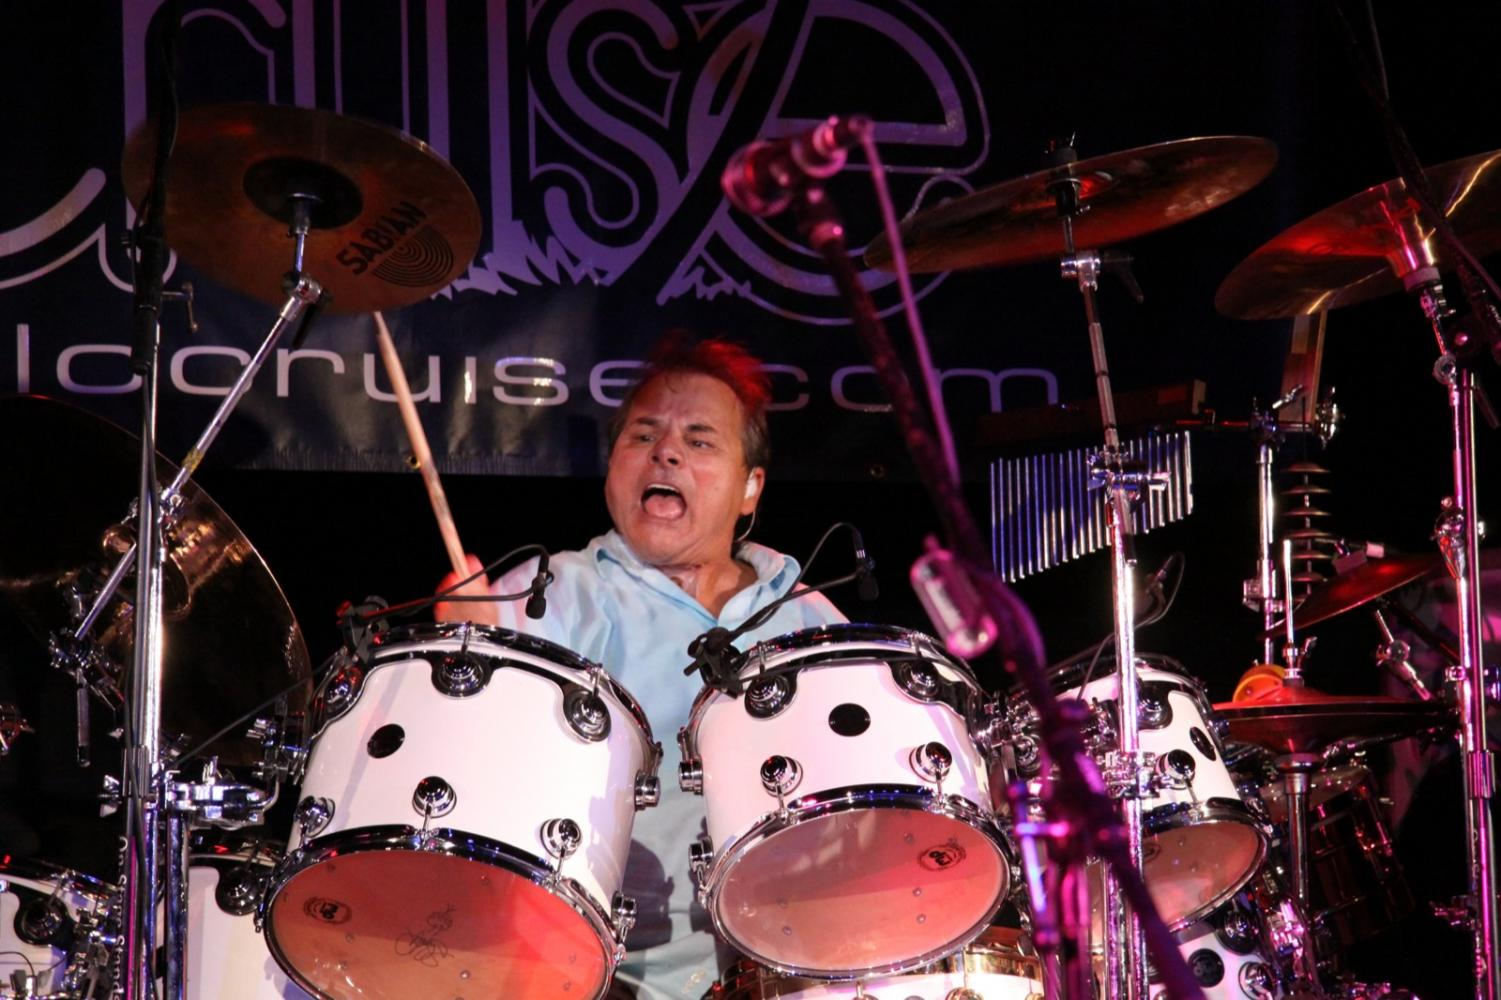 Steve Price, Pablo Cruise's drummer rocks out during a performance on July 10, 2009. Pablo Cruise is one of headliner's for Hornet Athletic's music festival Hornet Fest.